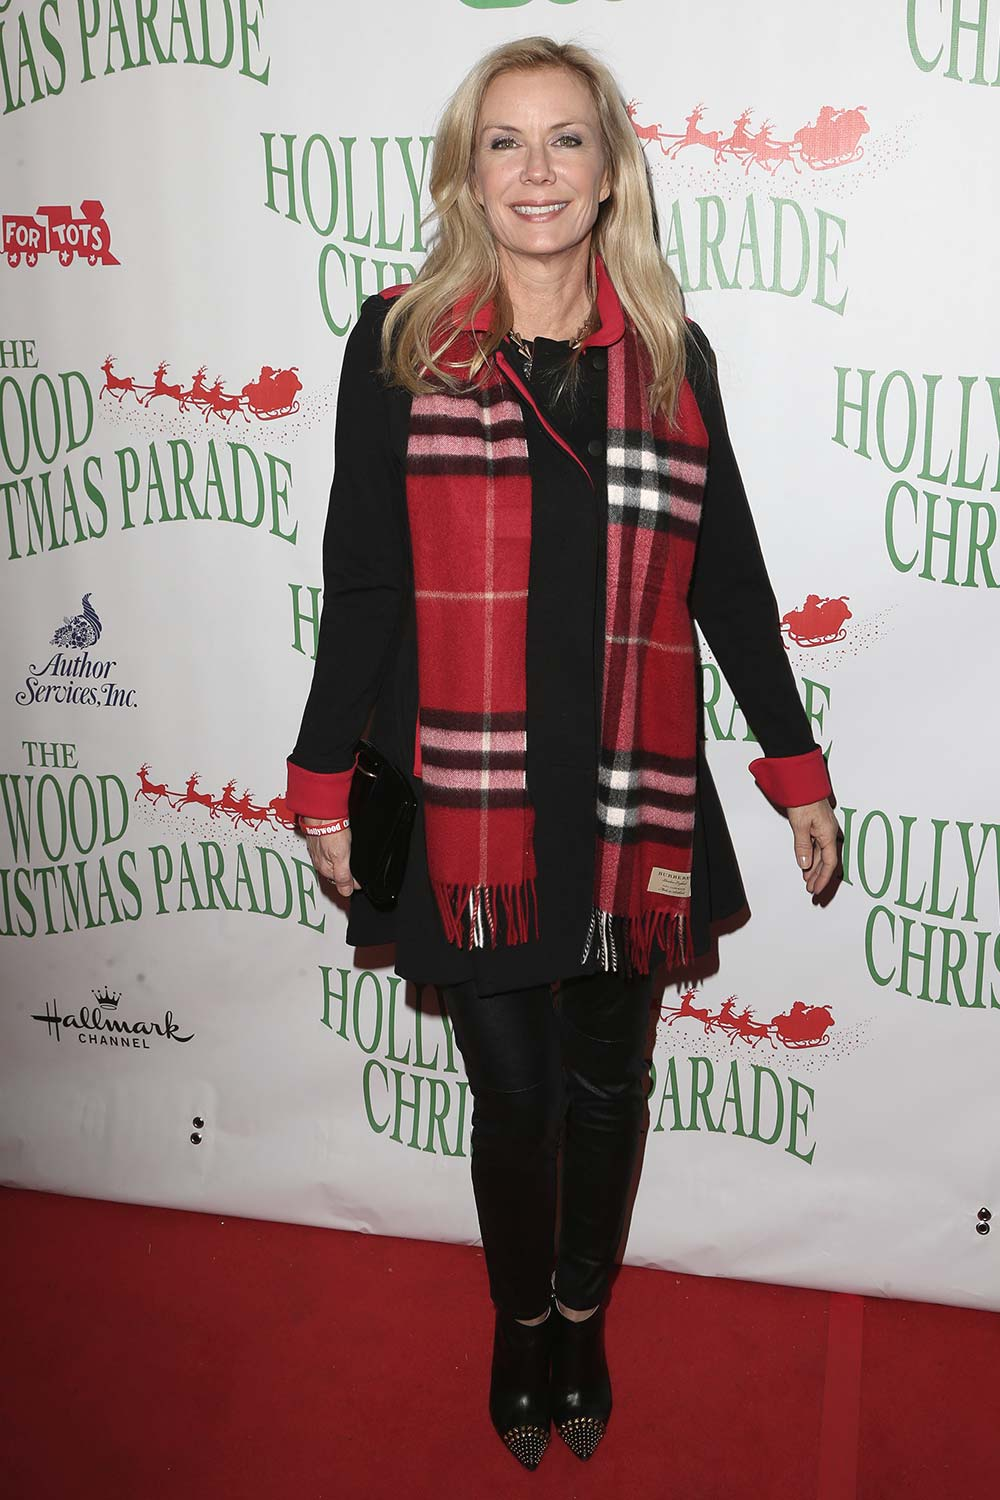 Katherine Kelly Lang attends 85th Annual Hollywood Christmas Parade